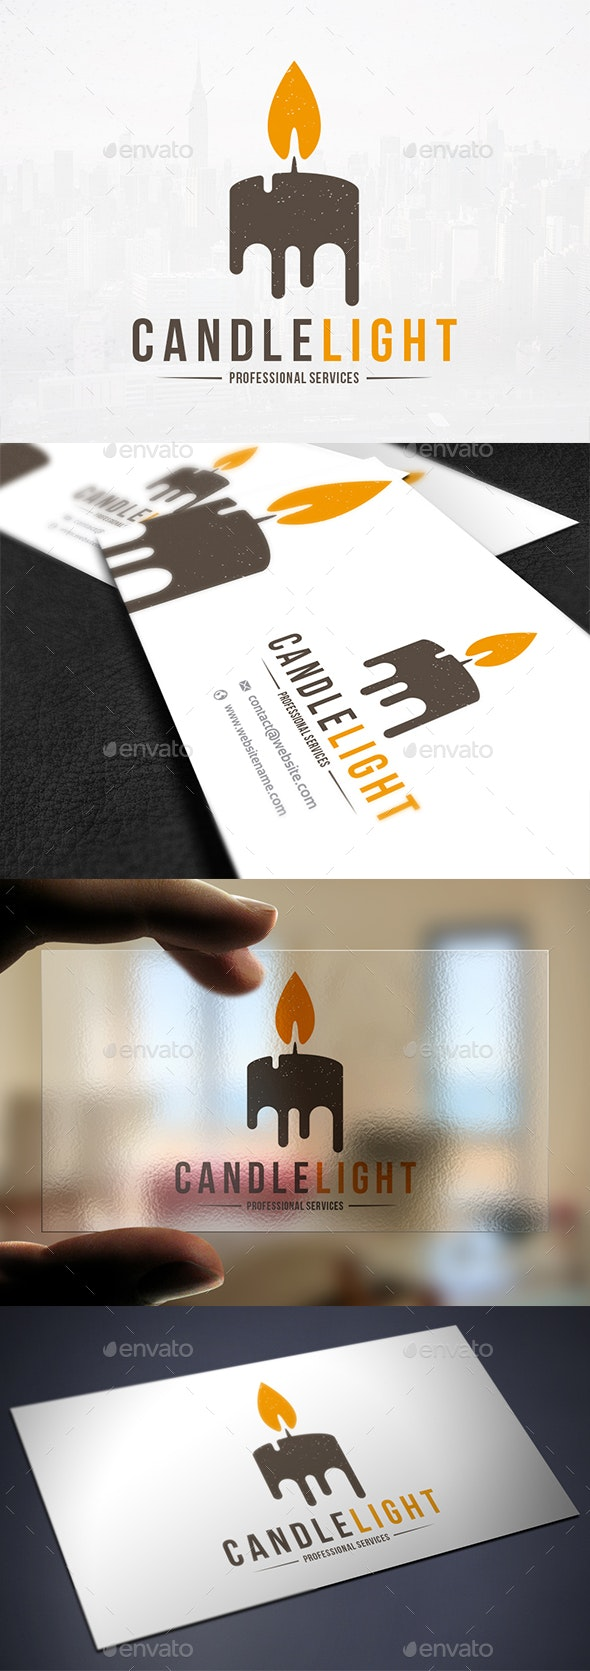 Candle Light Logo Template - Objects Logo Templates